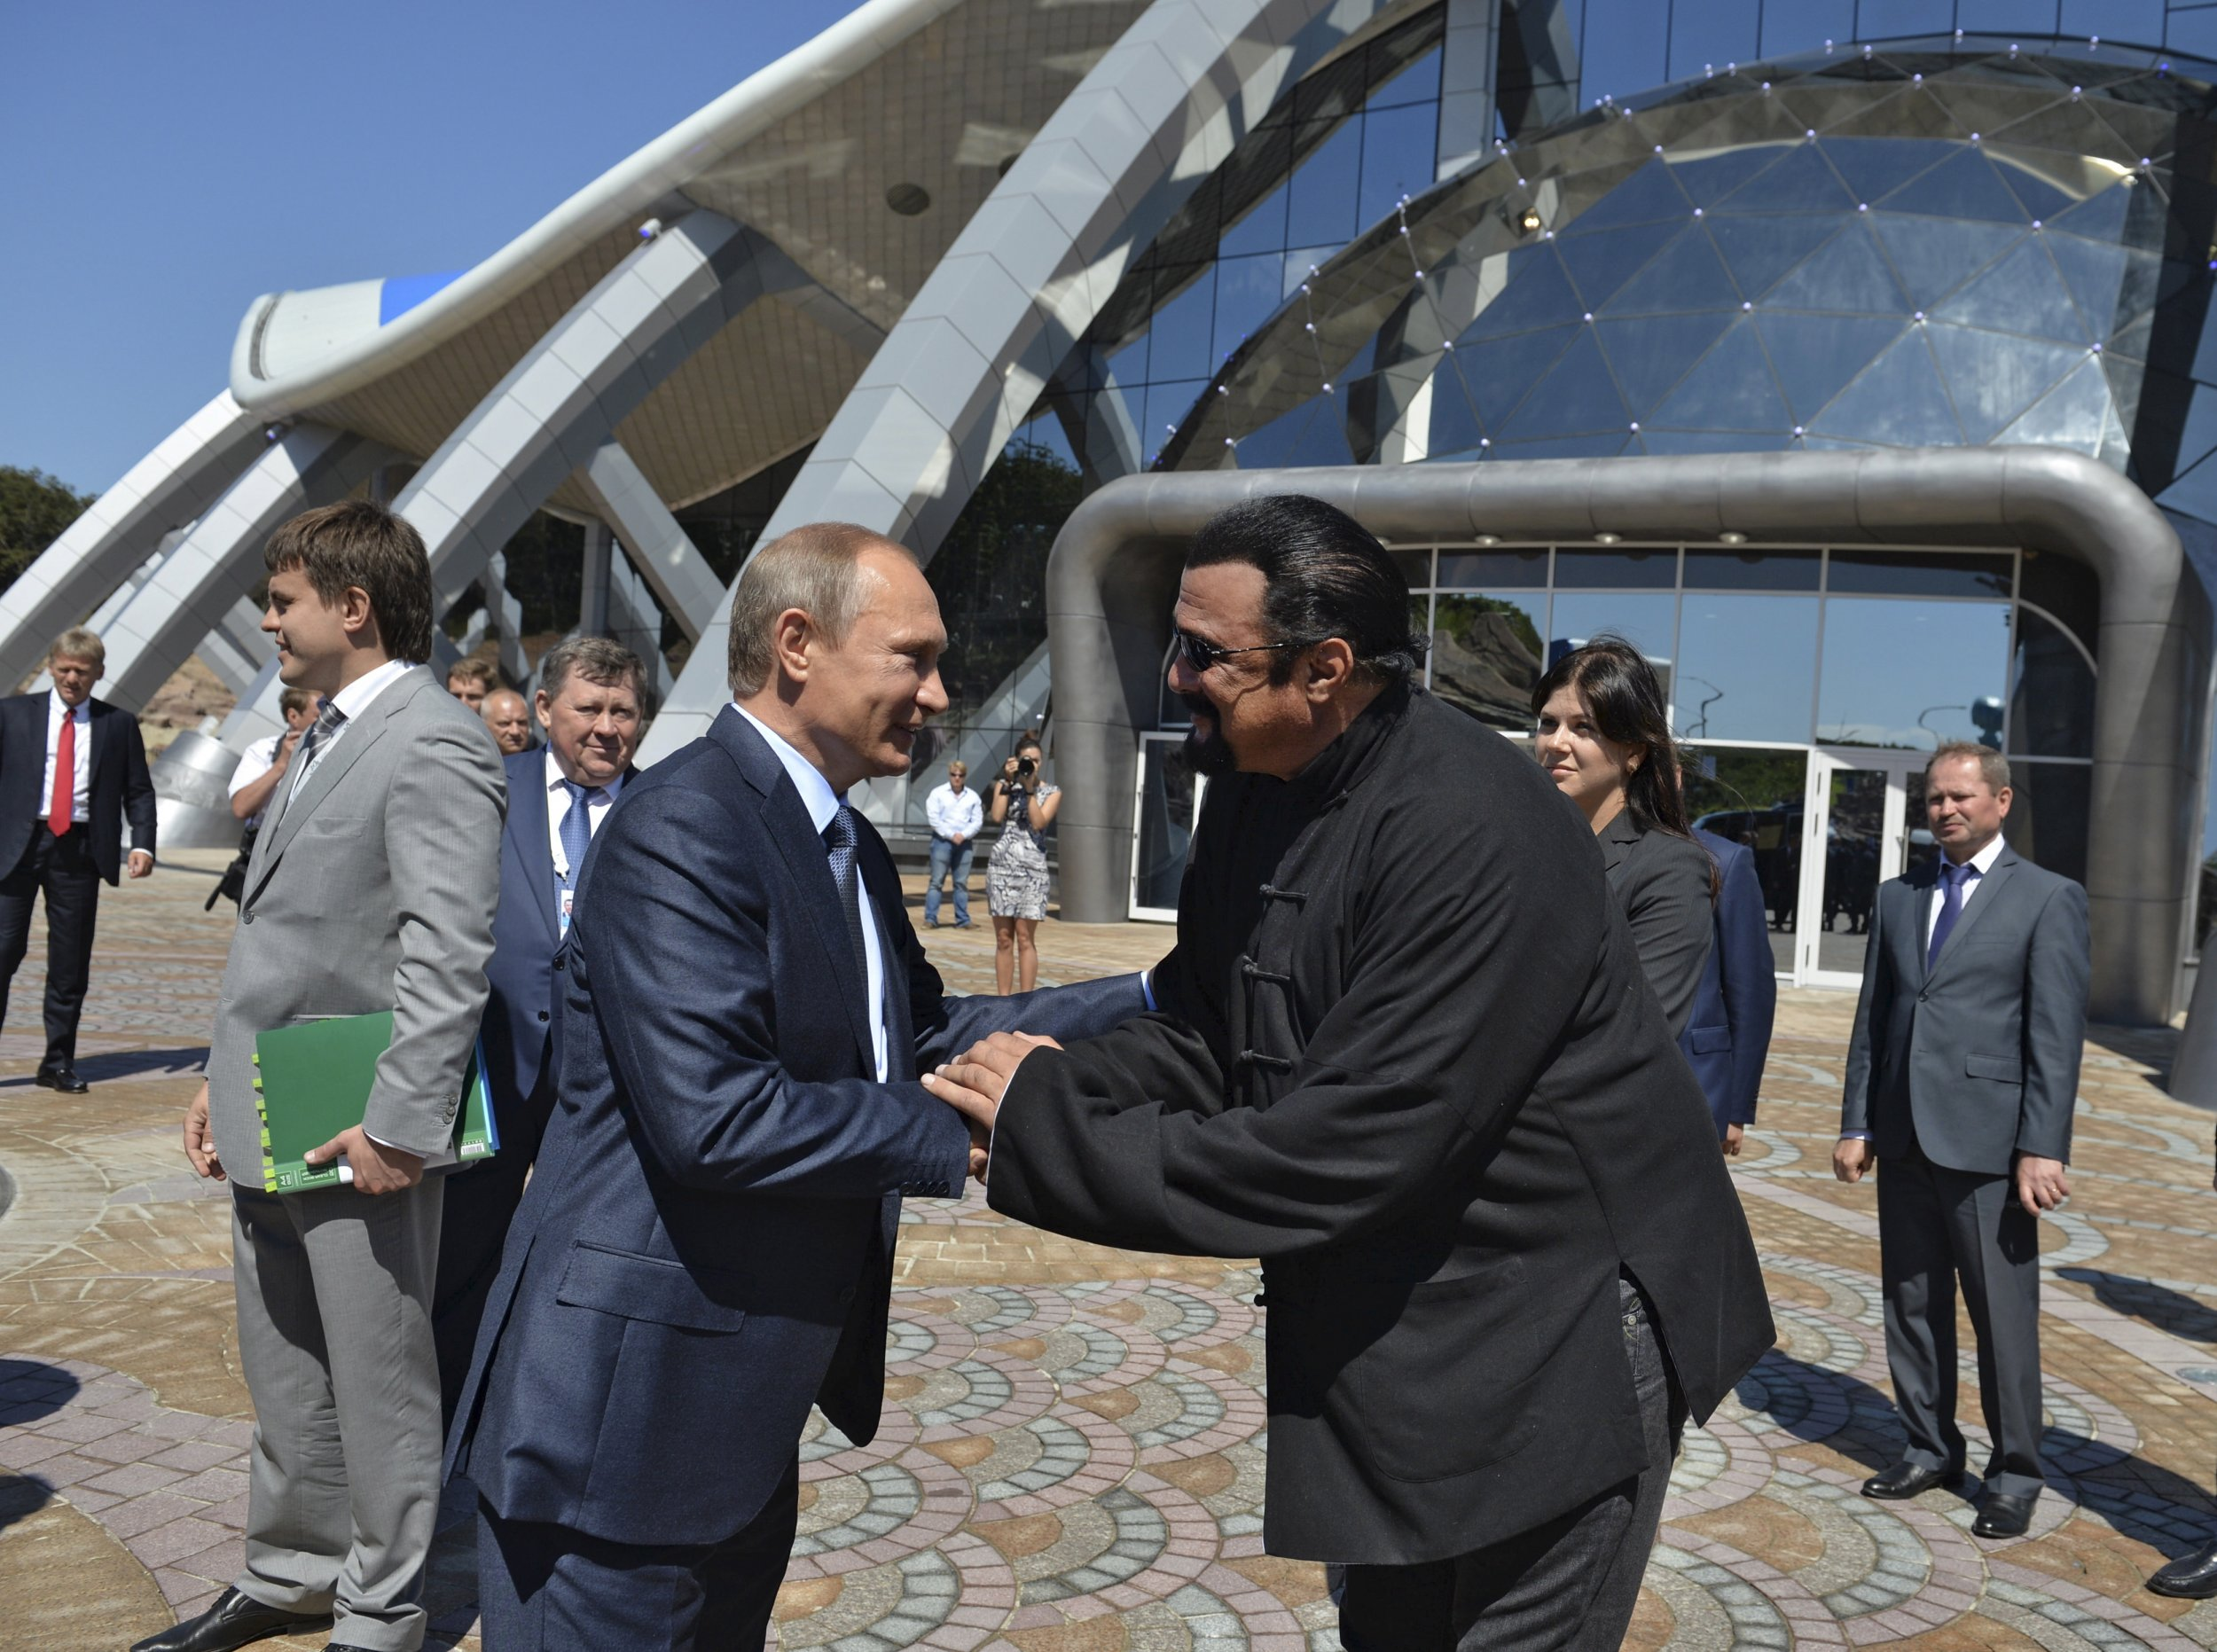 Putin and Seagal